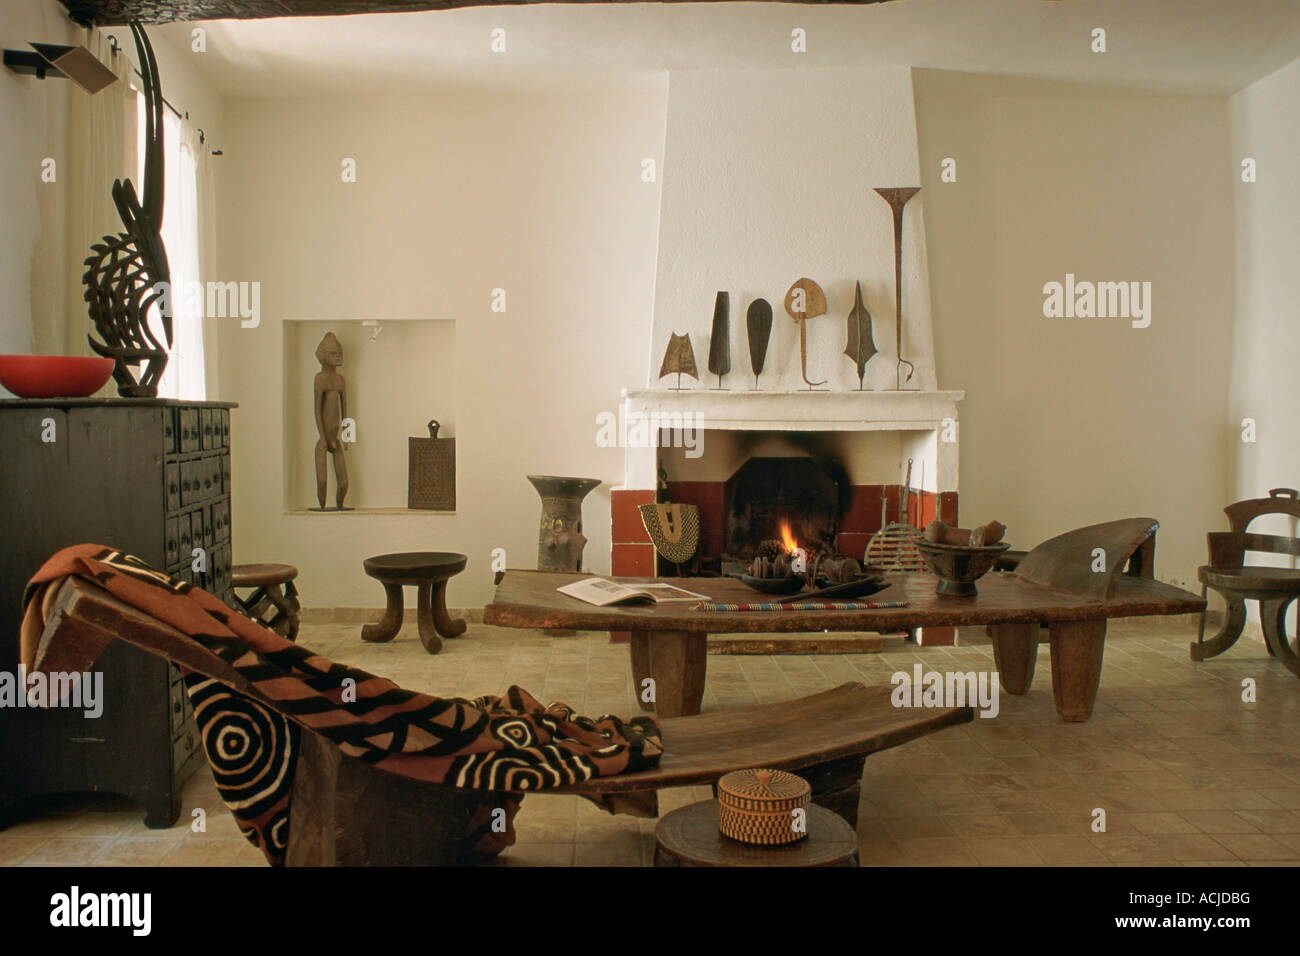 Living Room With African Bibelots And Furniture Coffee Table Cloth On Bench Chimney